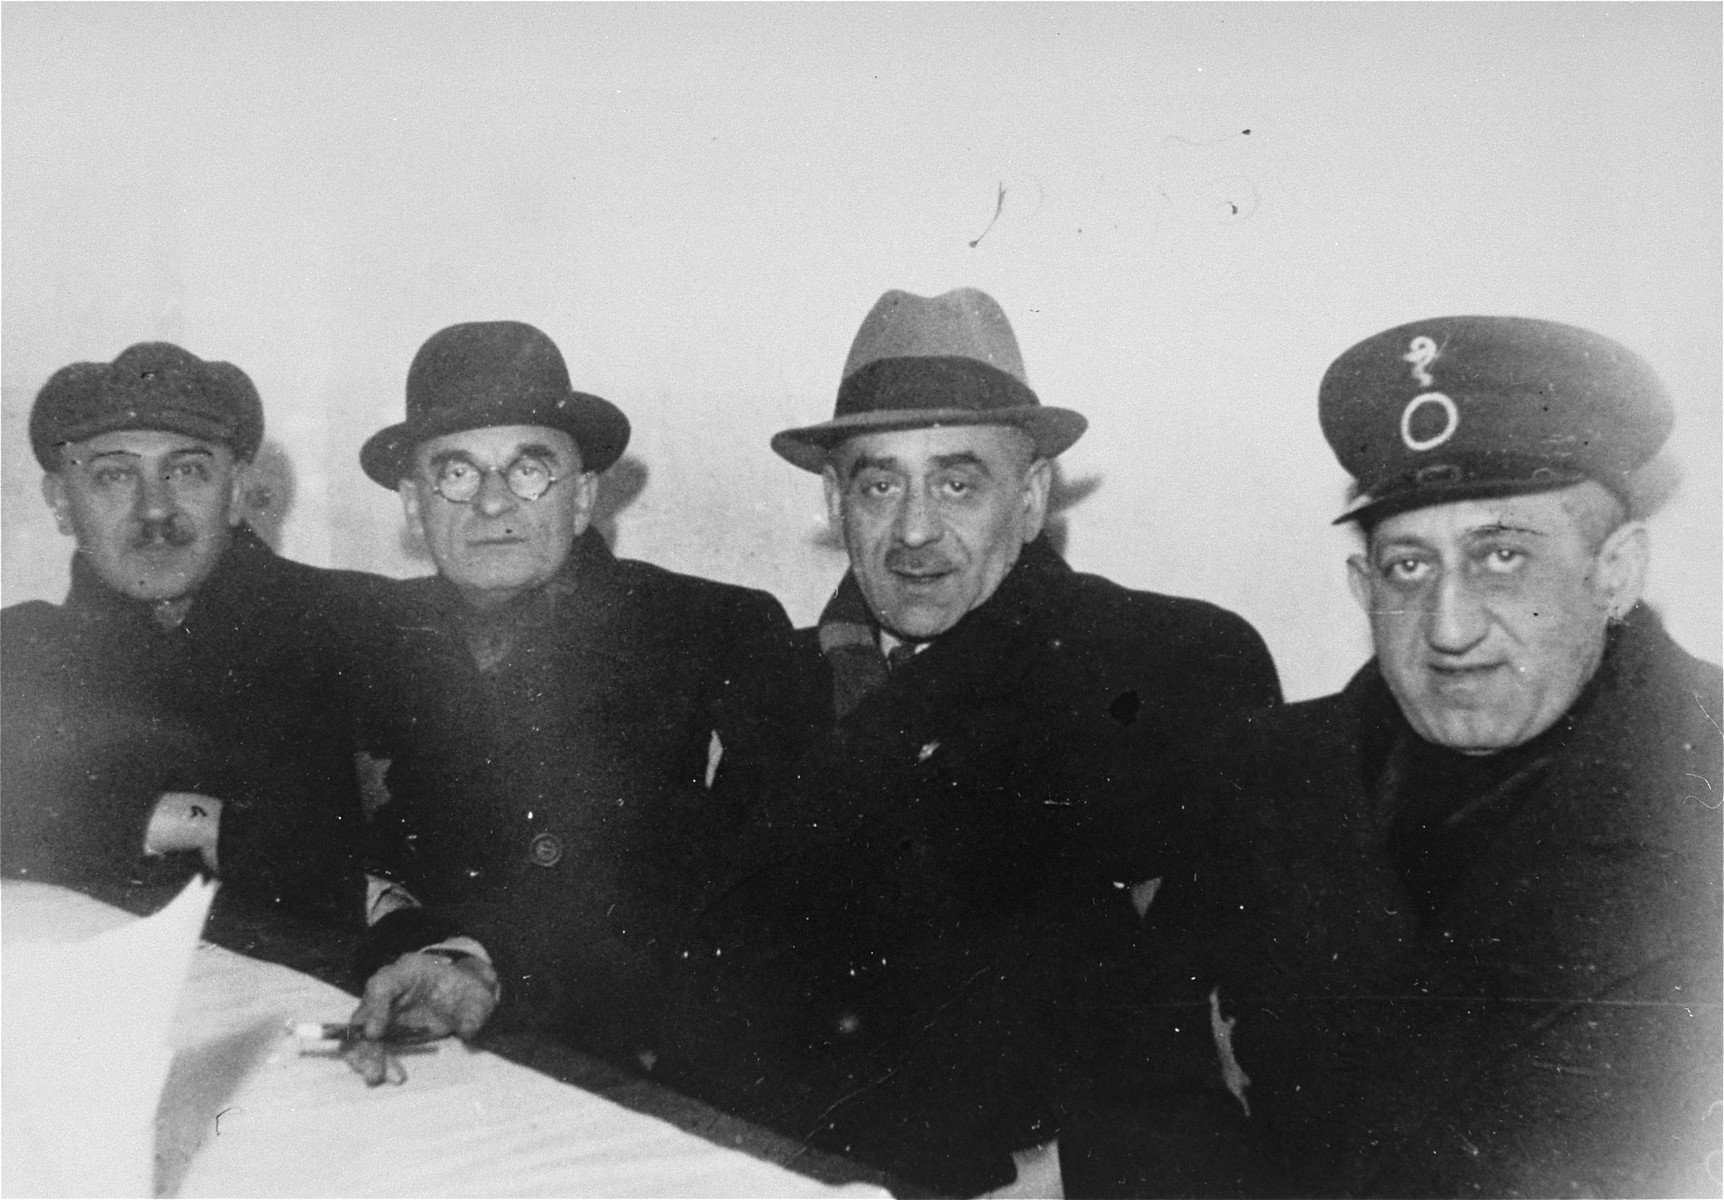 Four members of the Lodz ghetto administration seated at a table.  Pictured from left to right are: Mordechai Lajzerowicz, head of the ghetto bakeries; Max Szczesliwy, head of food supply; Leon Rozenblat, chief of police; and Dr. Leon Szykier, head of the health department.